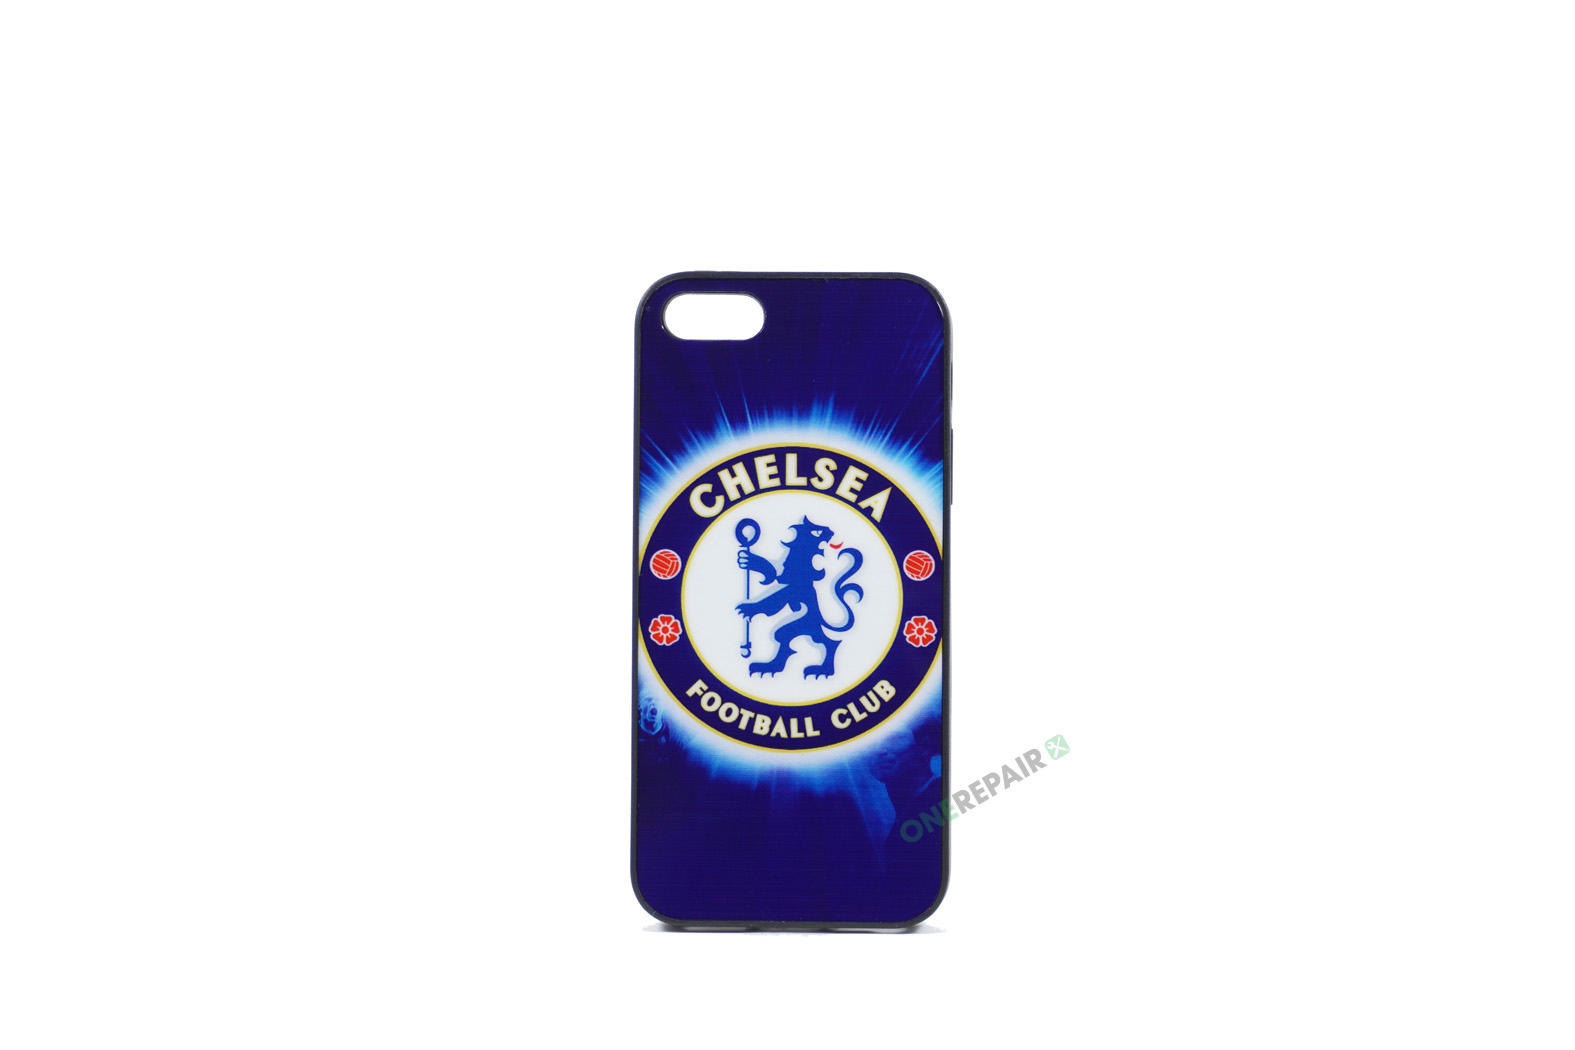 Billig iPhone 5 5S SE Cover Bagcover Gummicover A1453 A1457 A1518 A1528 A1530 A1533 A1428 A1429 A1442 A1723 A1662 A1724 Chelsea FC Blues Fodbold Klub